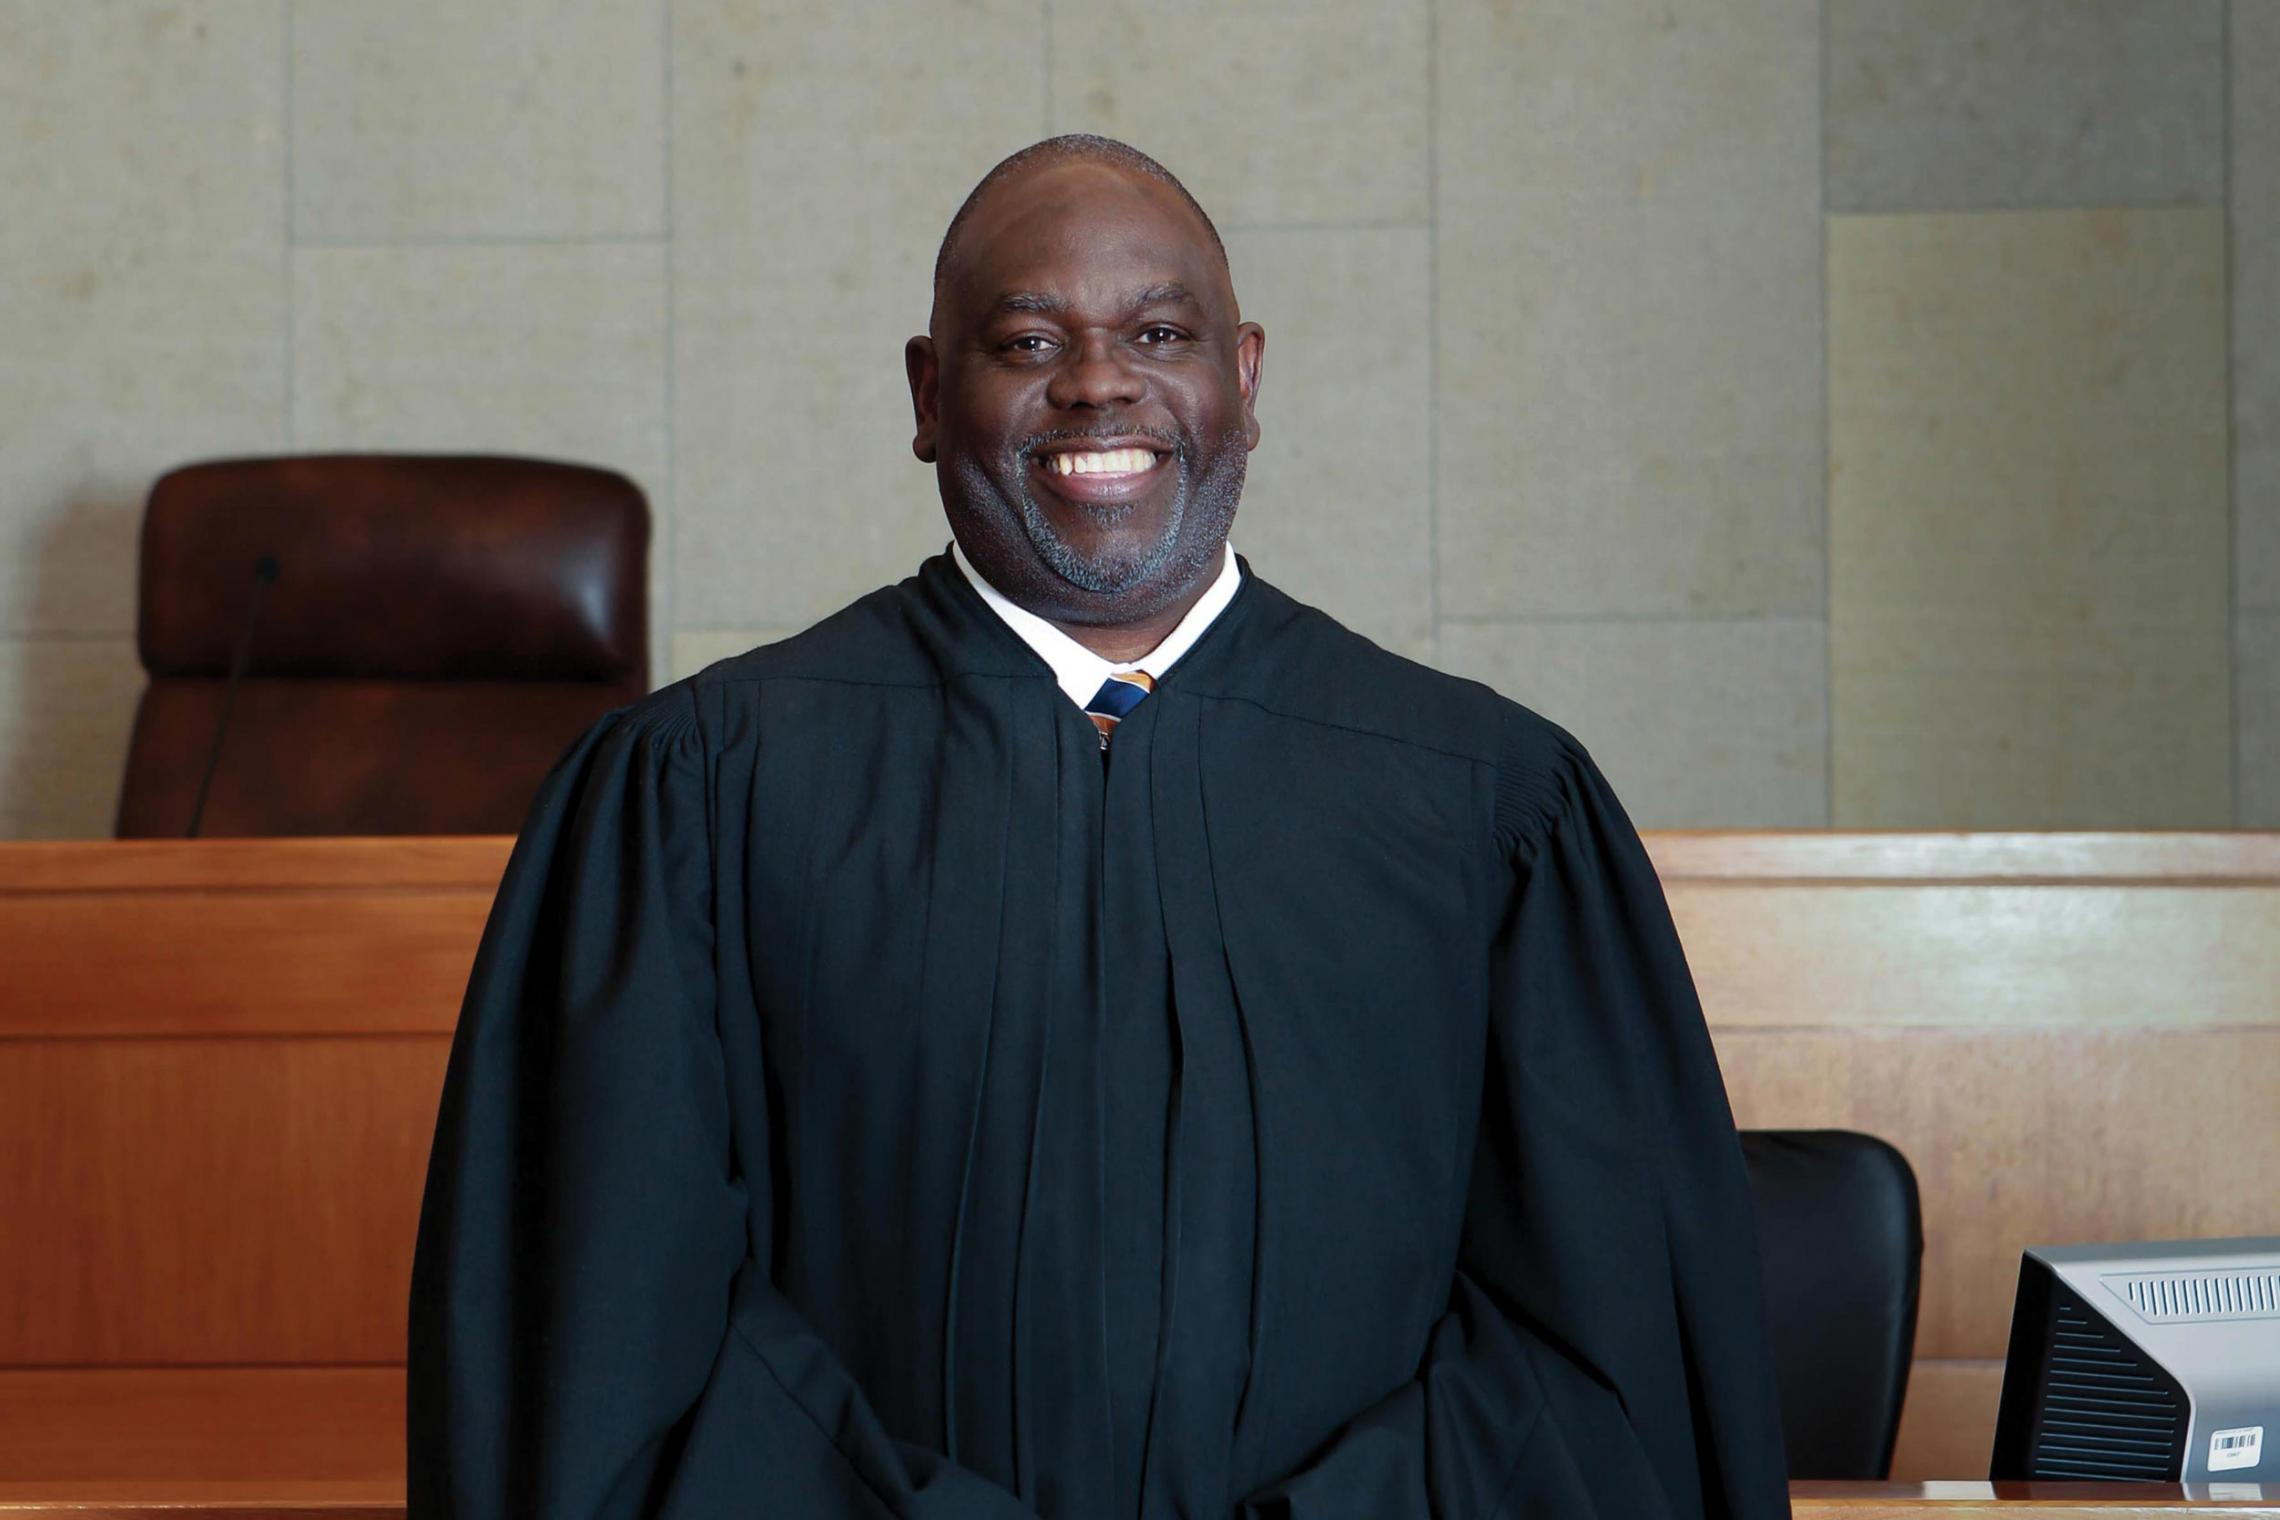 U.S. Judge Carlton W. Reeves, who graduated from the UVA School of Law in 1989, has served for almost a decade on the U.S. District Court for the Southern District of Mississippi. (Photo by Christina Cannon)